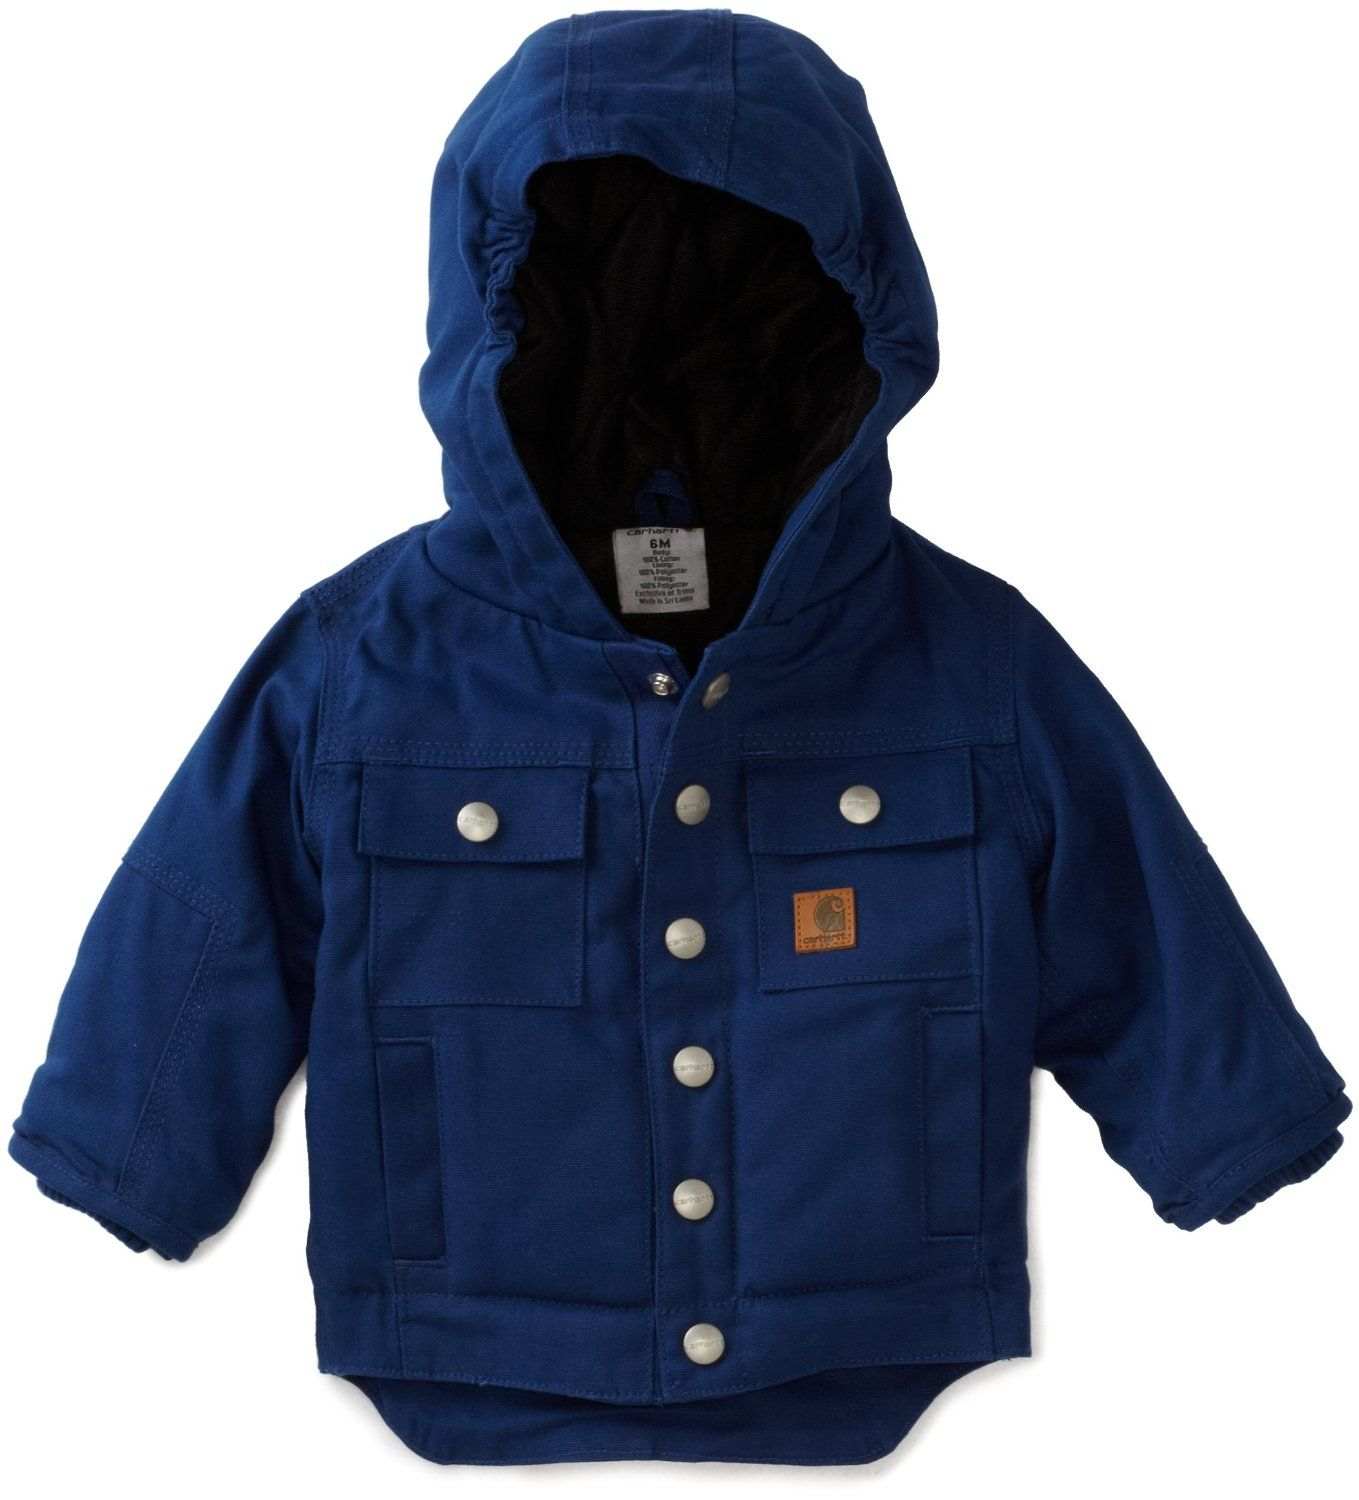 Amazon.com: Carhartt Baby-boys Infant Rancher Quilted Flannel ... : quilted baby coat - Adamdwight.com